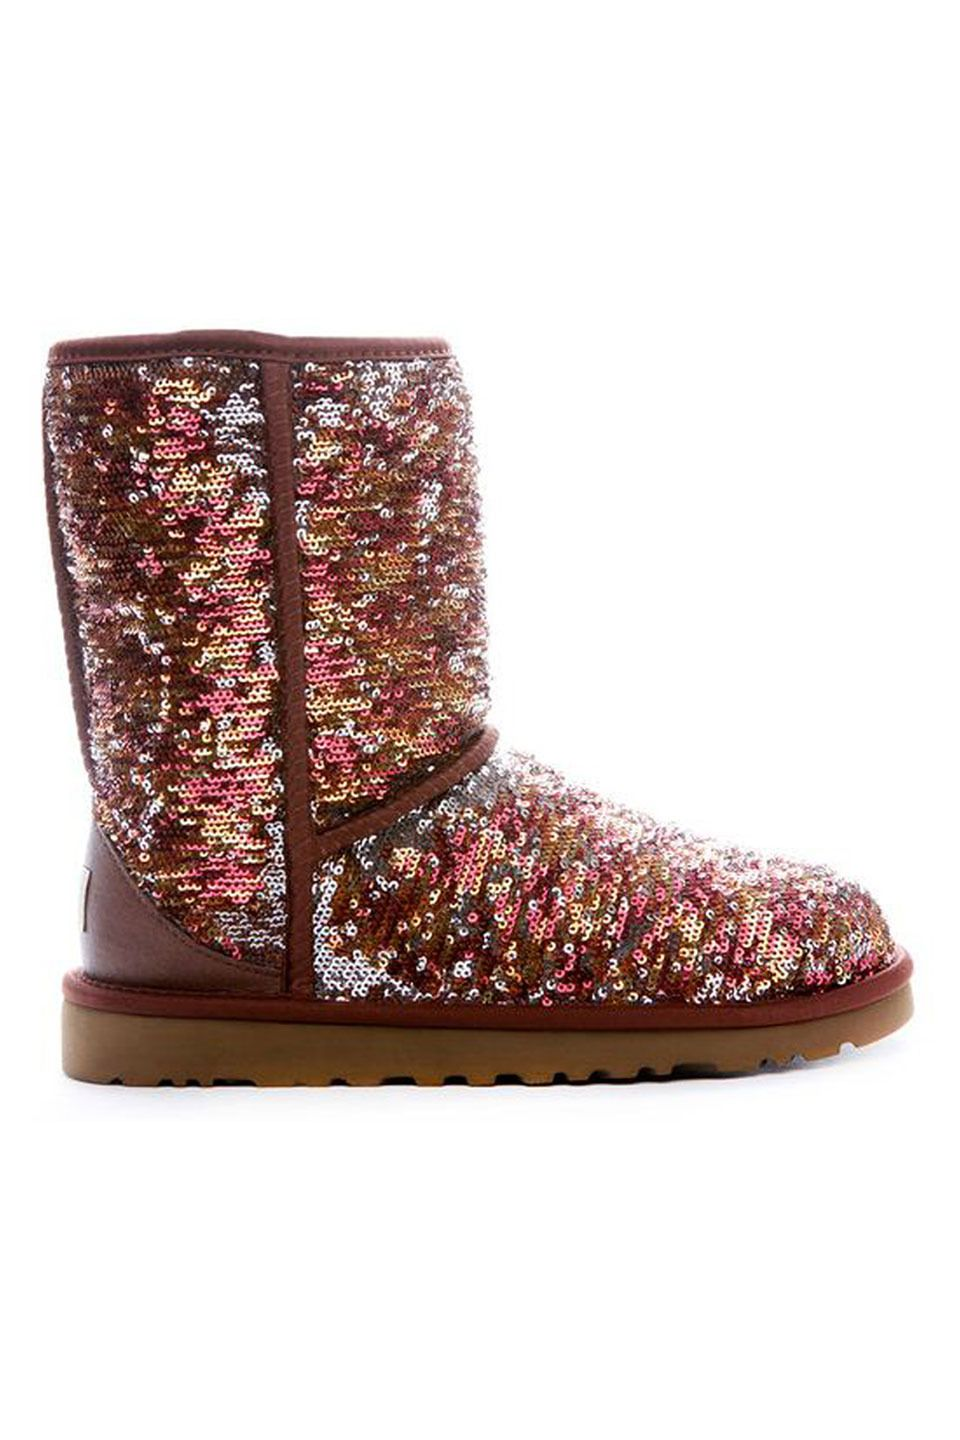 ugg classic short sparkles boot in autumn shoe shine ugg boots rh pinterest com